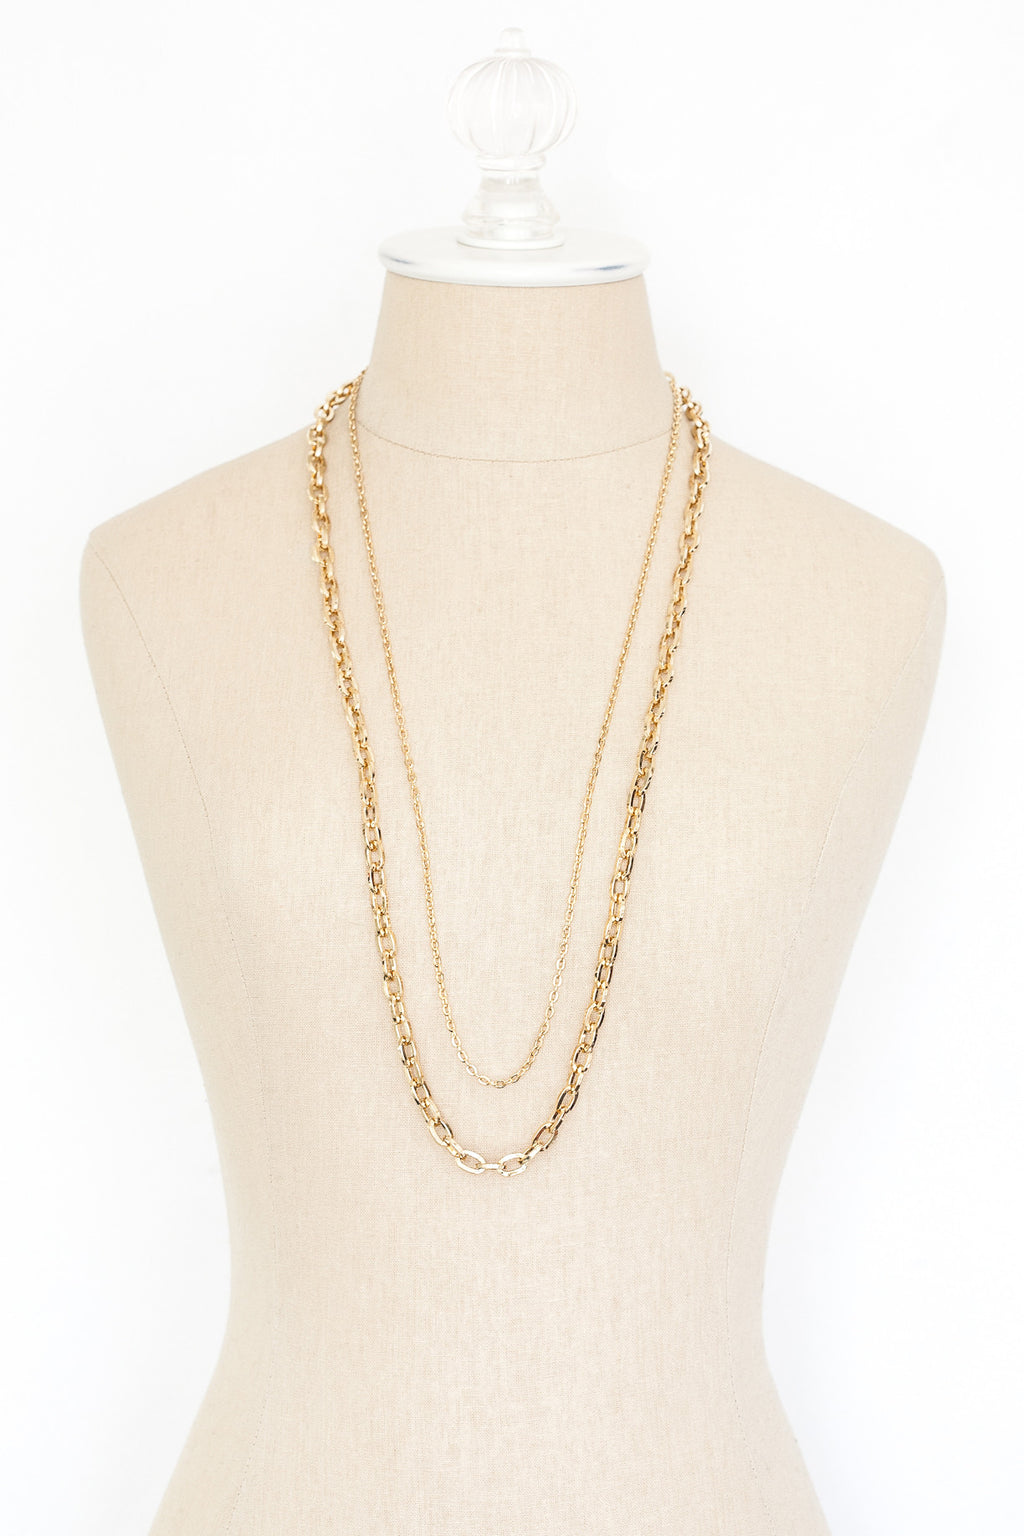 80's__Beeline__Multi Chain Necklace